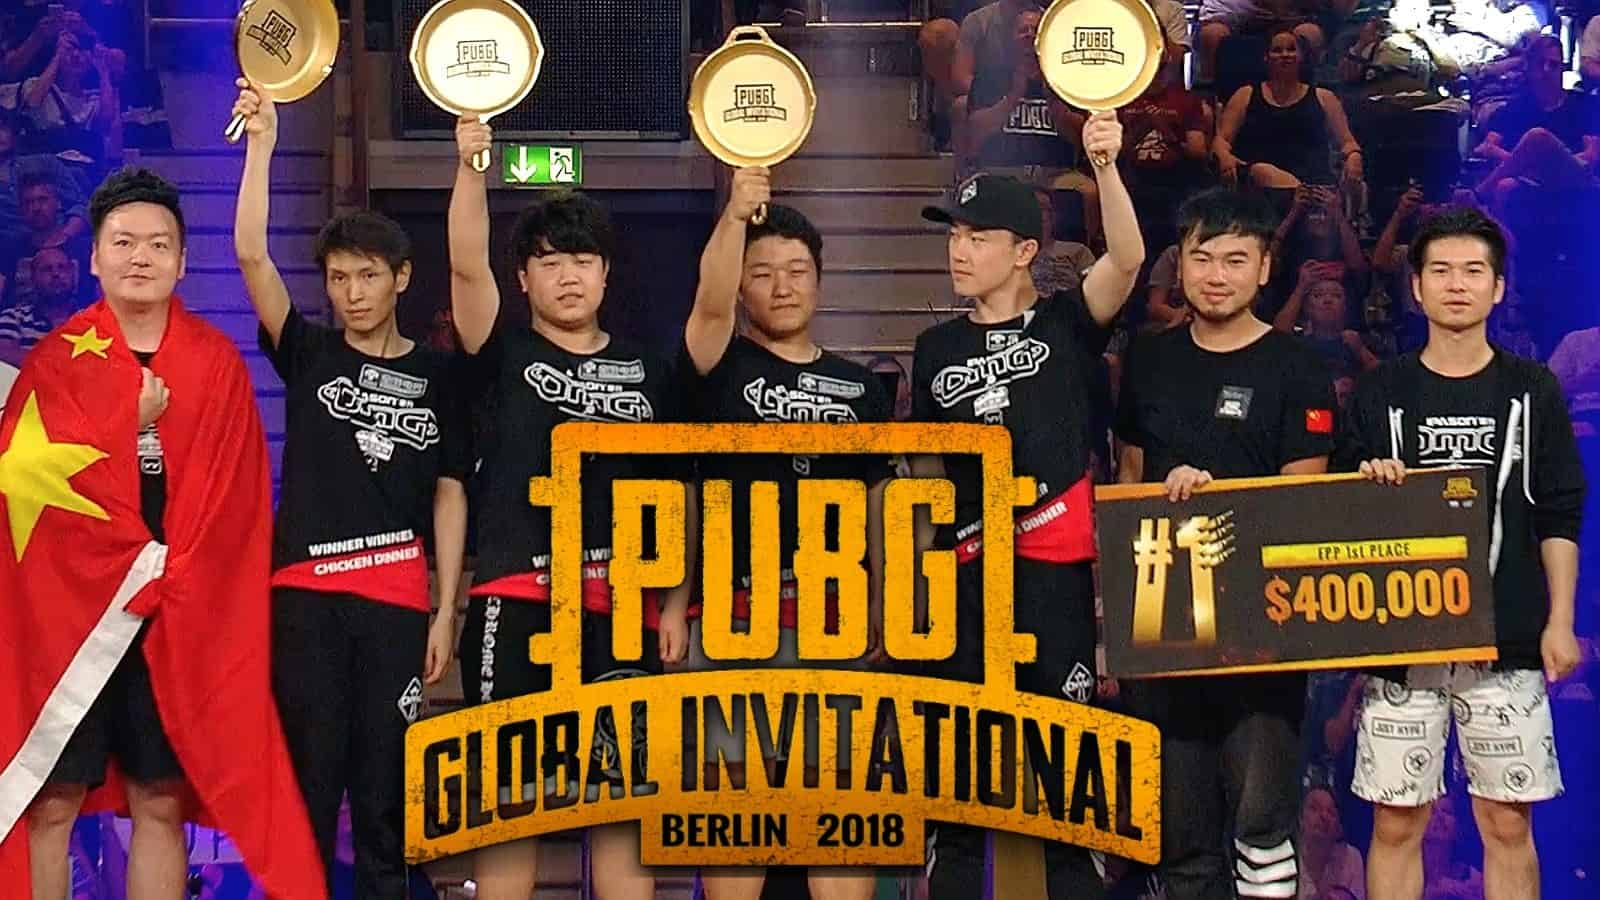 pgi-pubg-2018-global-invitational-omg